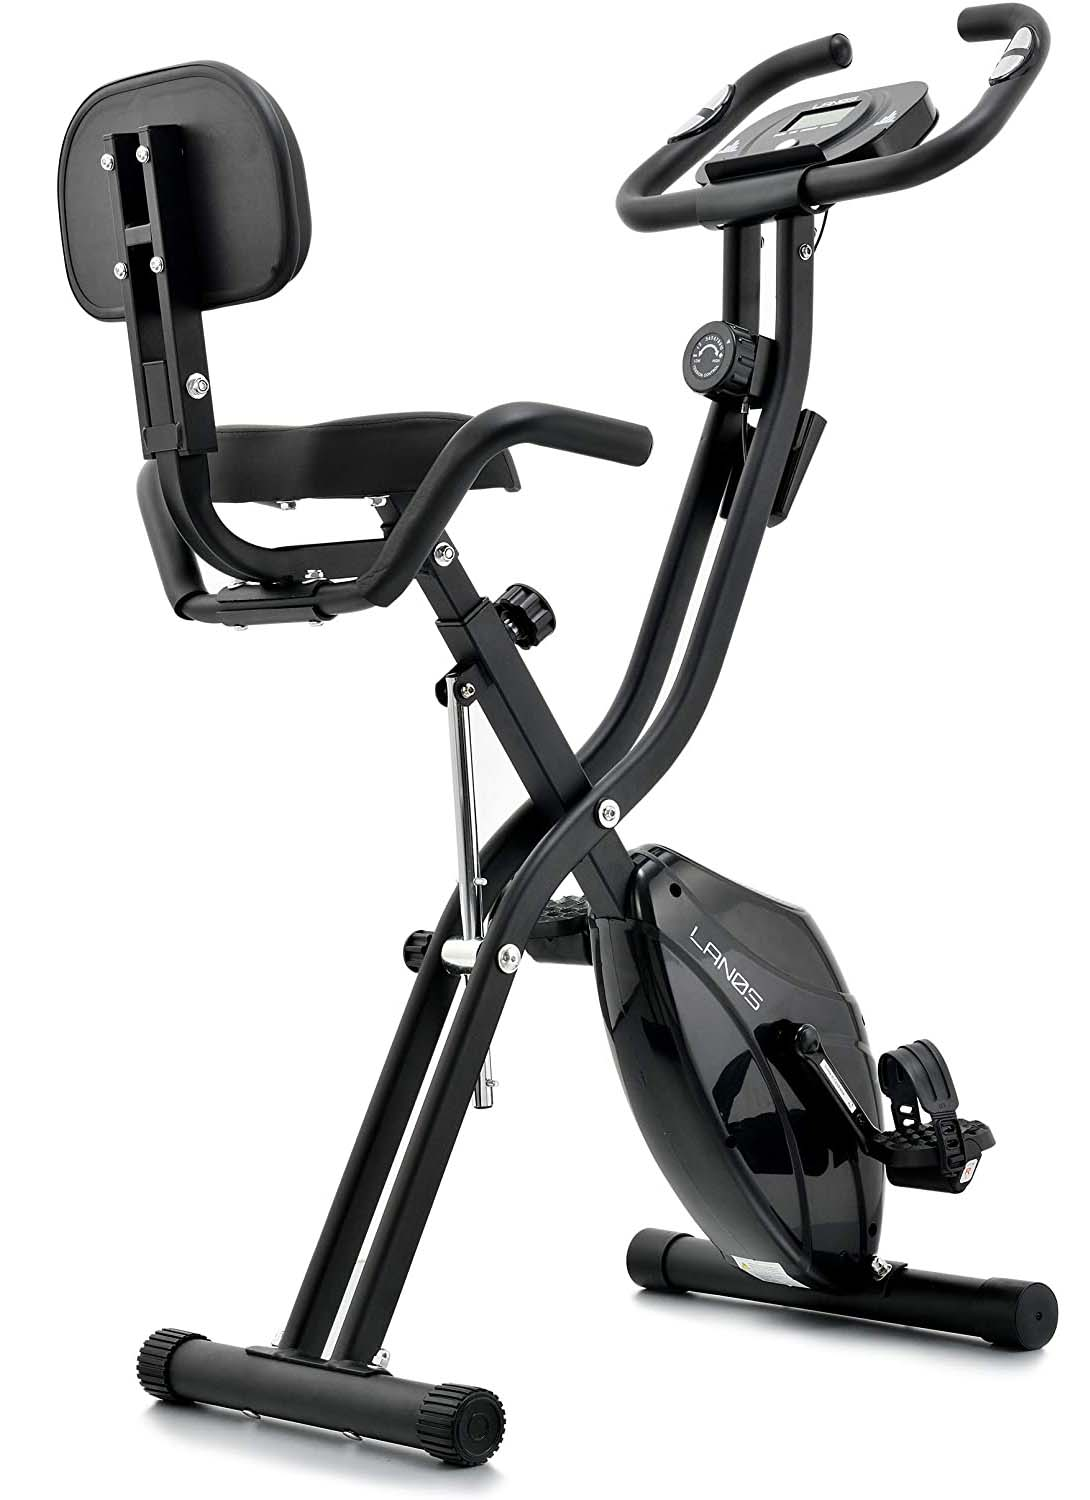 Stationary Bike For Small Space reviews